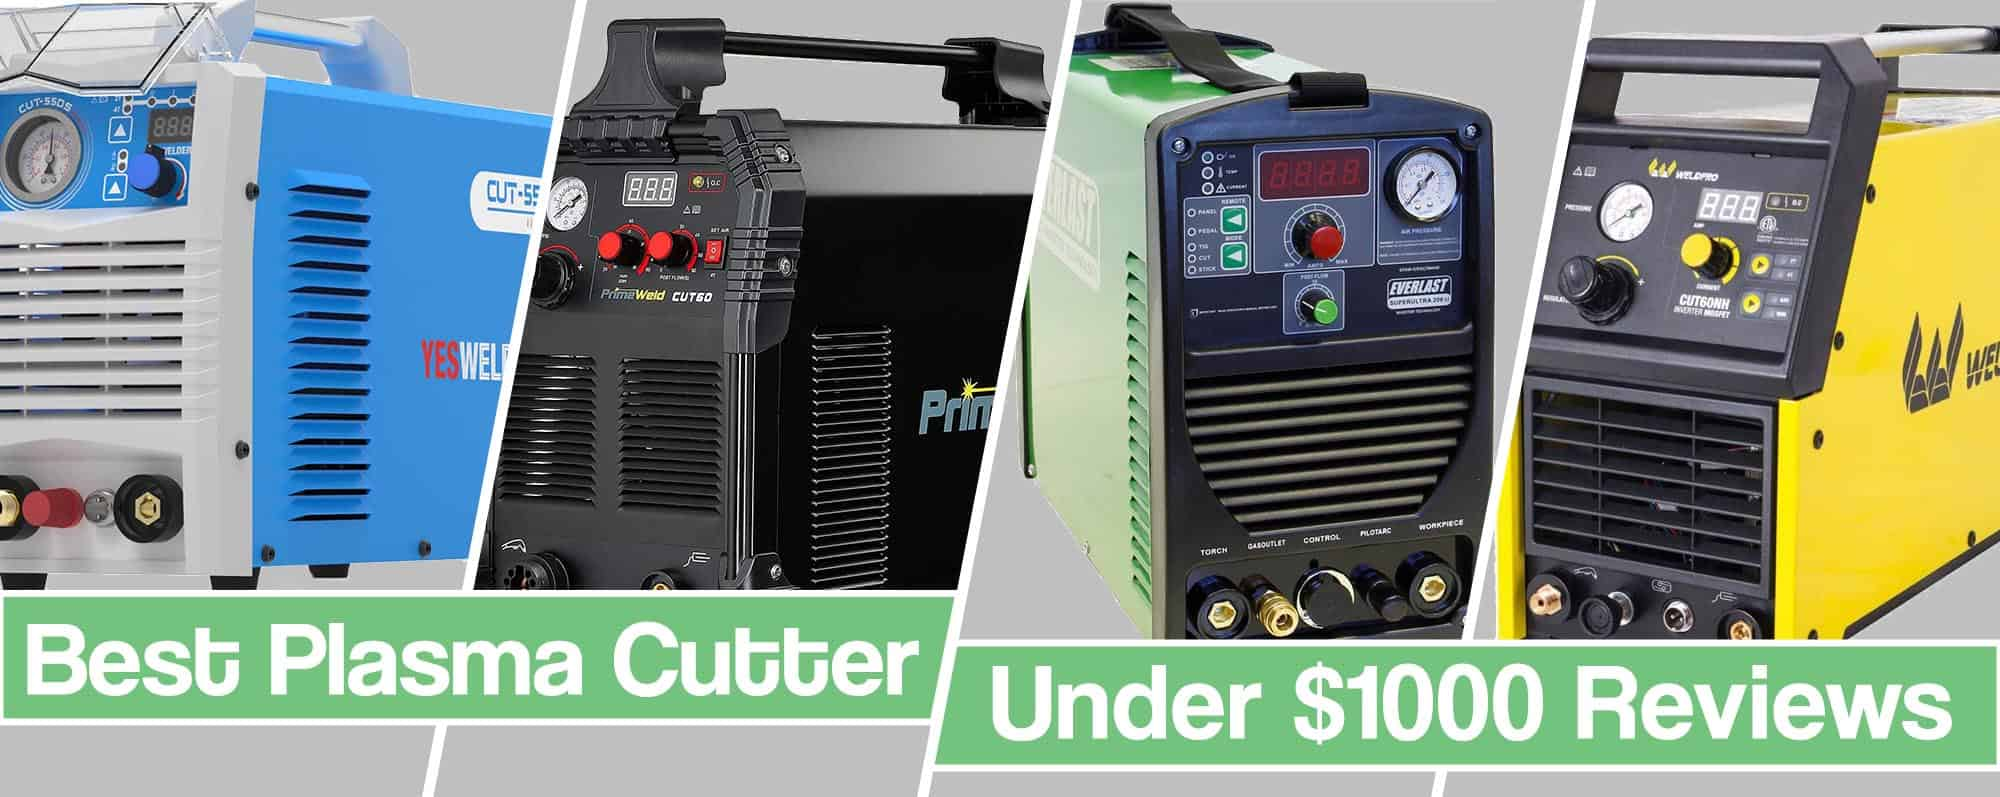 Feature image for Best Plasma Cutters Under $1,000 article